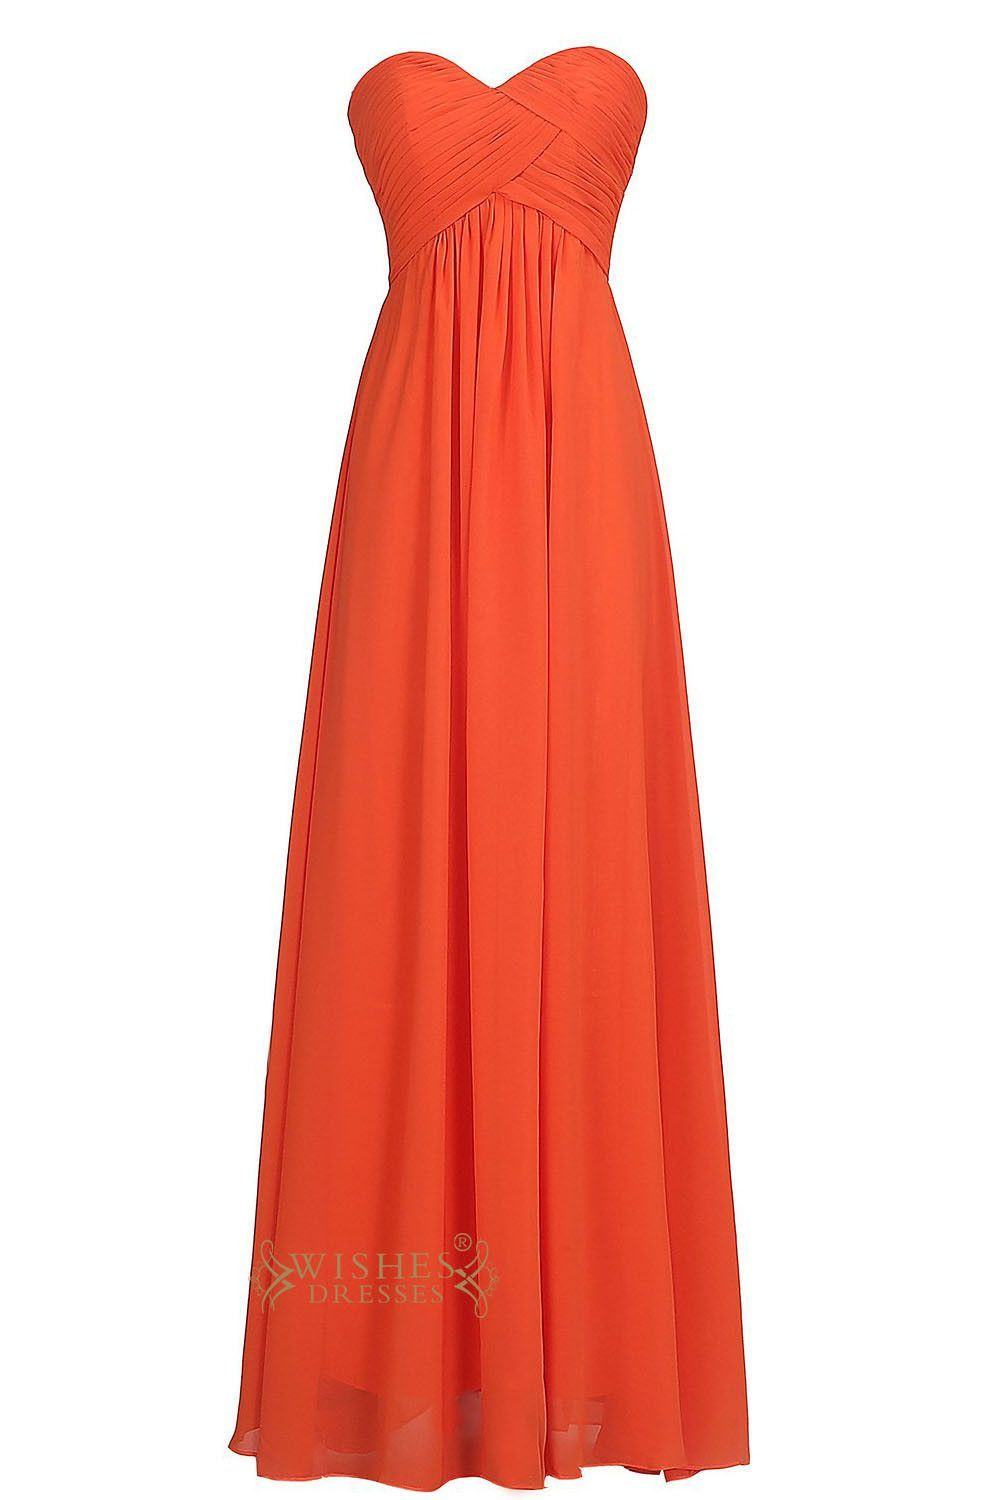 Sweetheart orange red chiffon empire floor length bridesmaid dresses